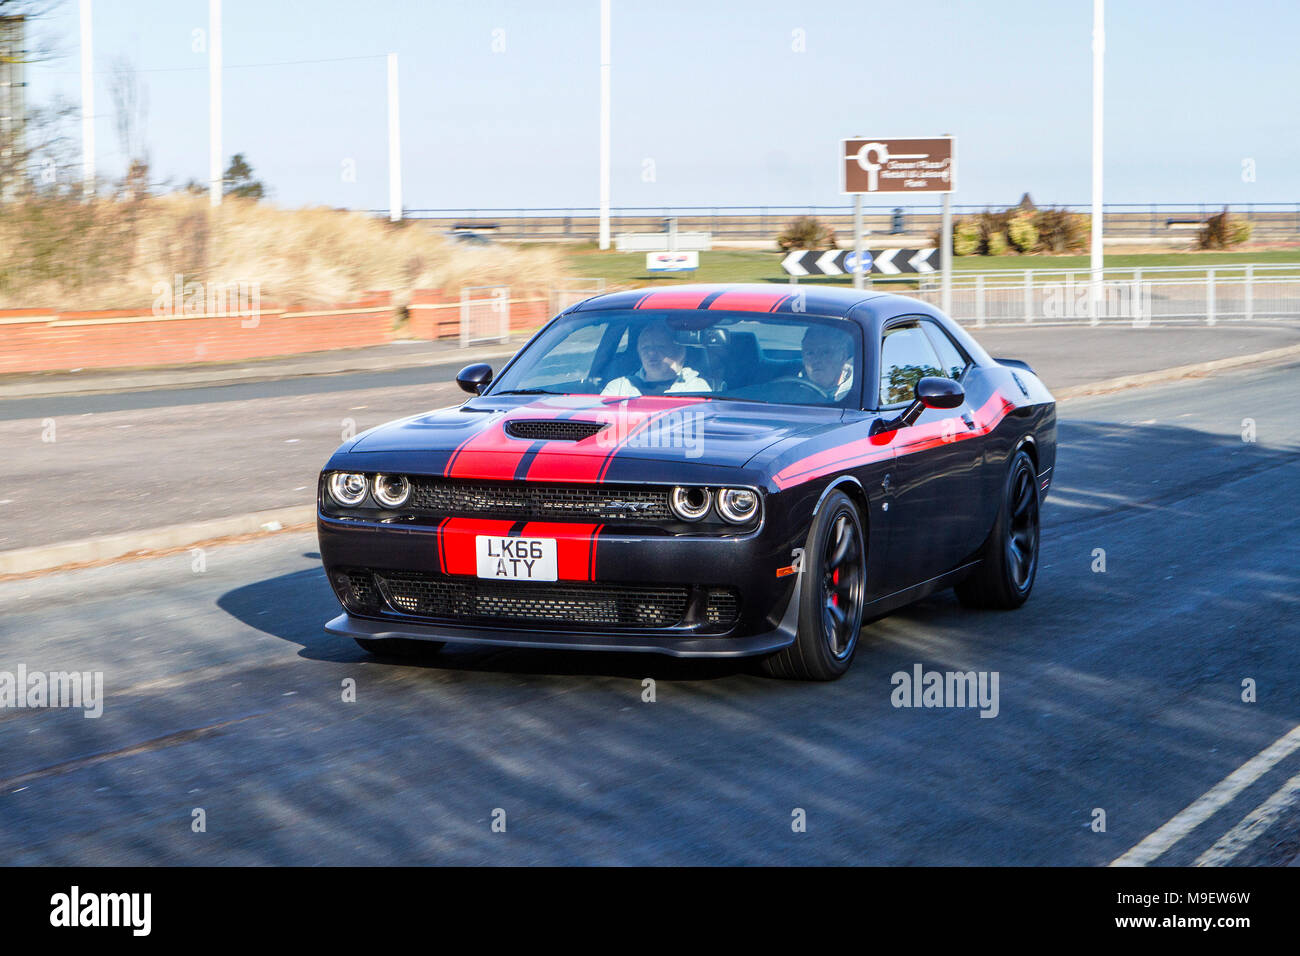 Air Transport American Muscle Car Stock Photos & Air Transport ...